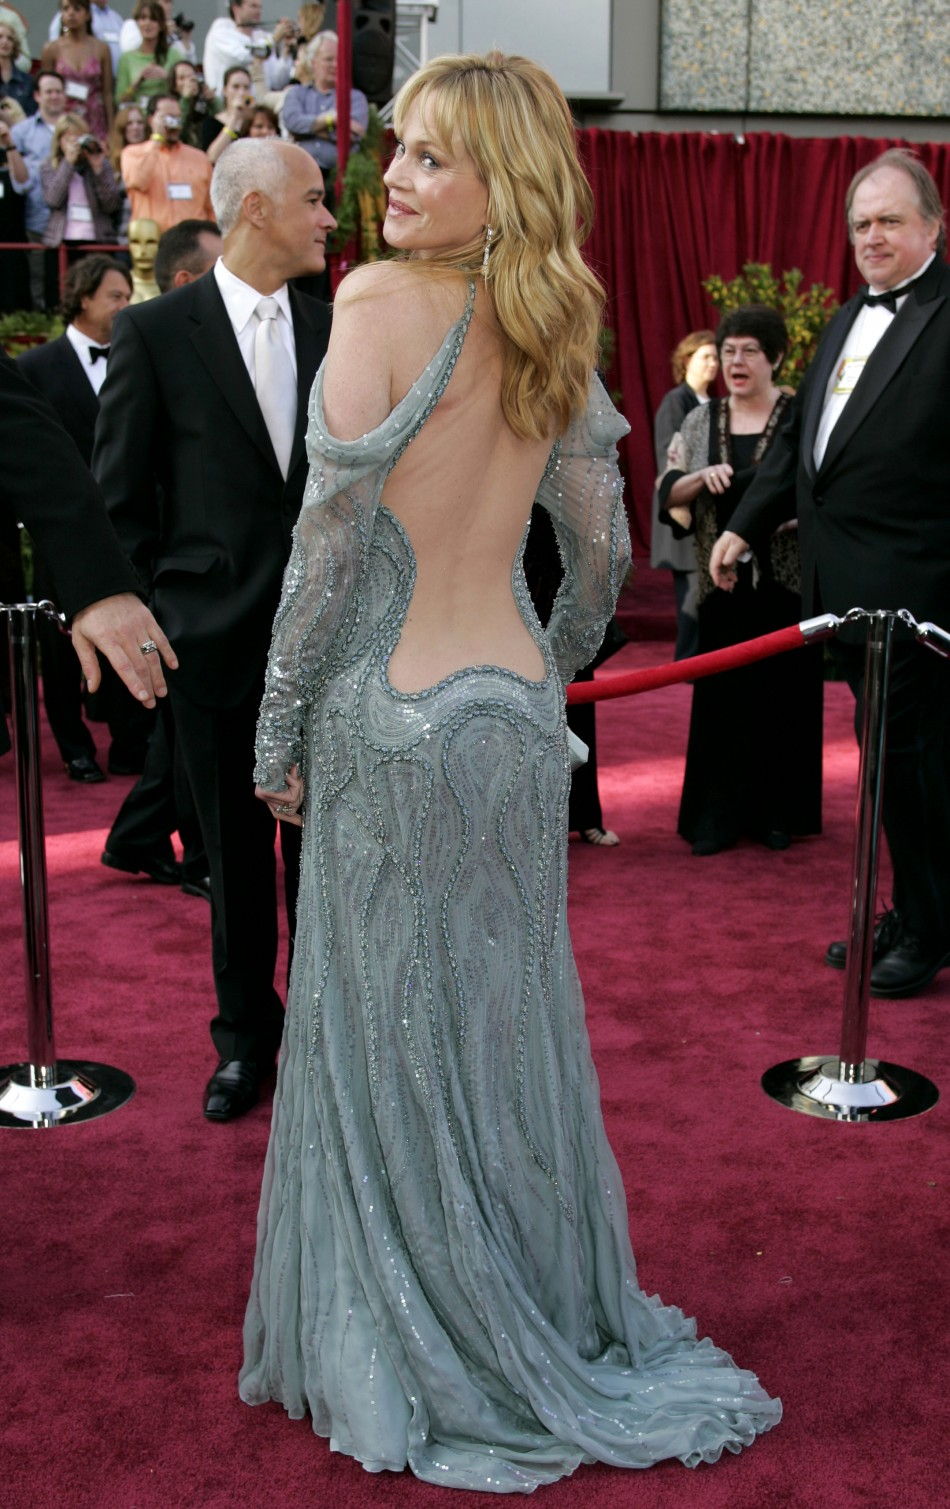 U.S. actress Melanie Griffith arrives at the 77th annual Academy Awards.